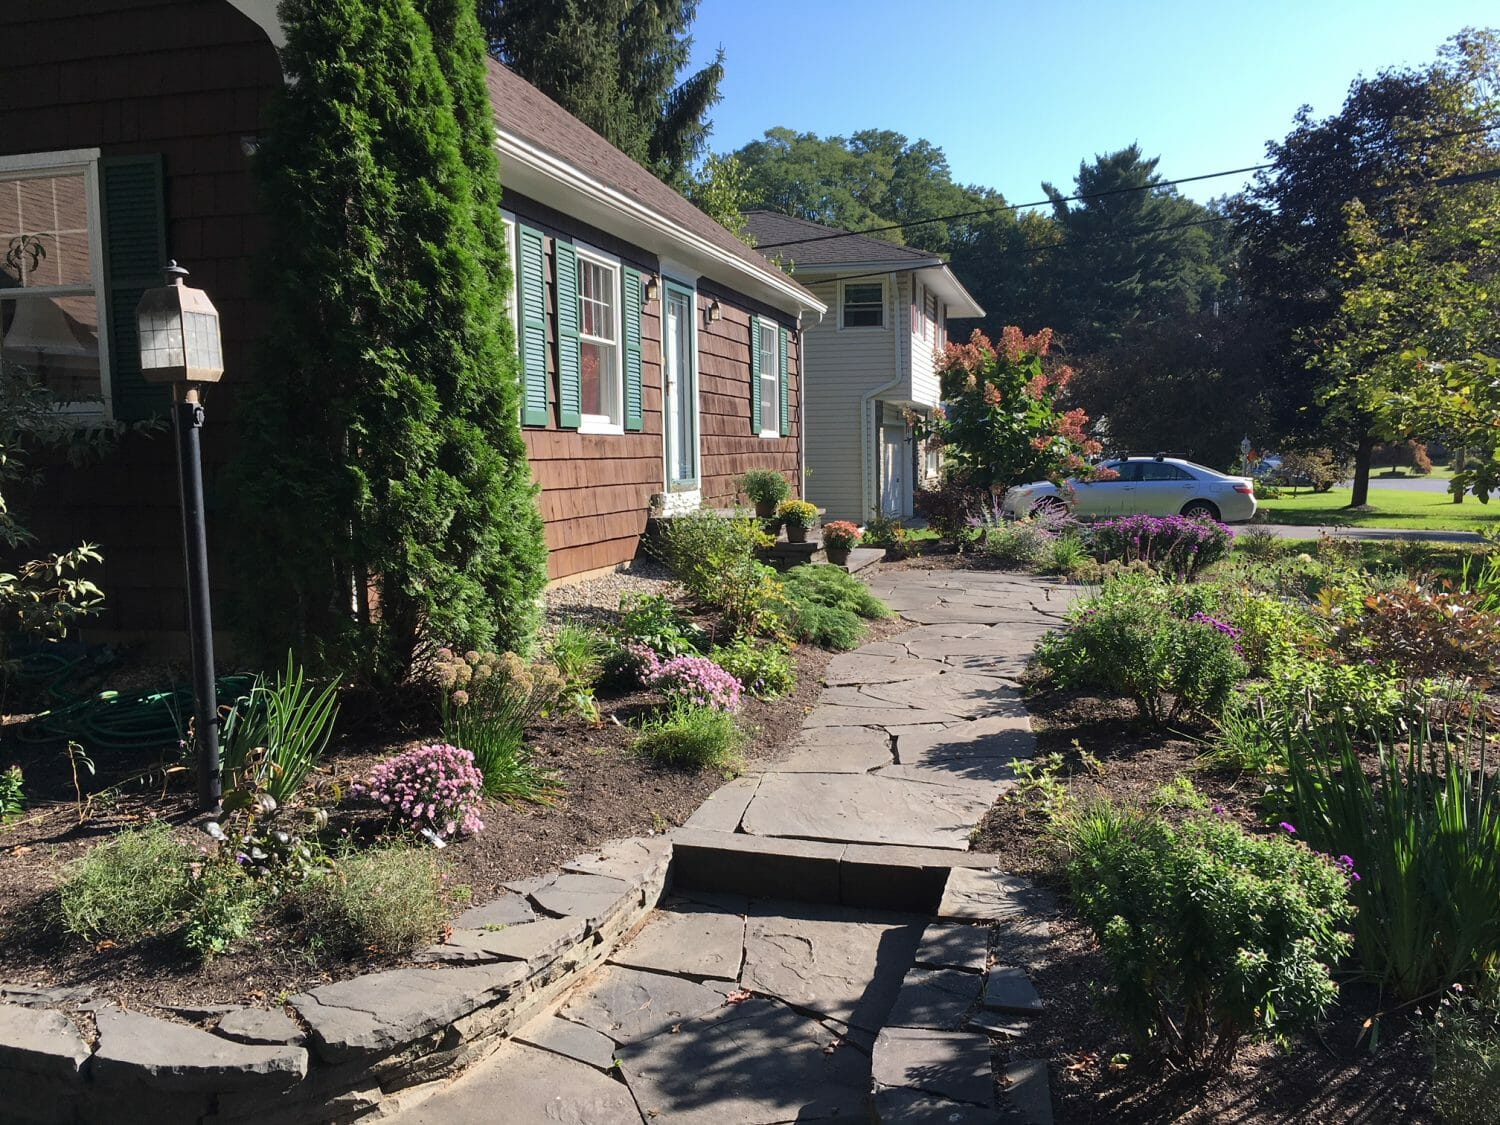 Naturalistic landscape design using native plants in Schenectady County, NY